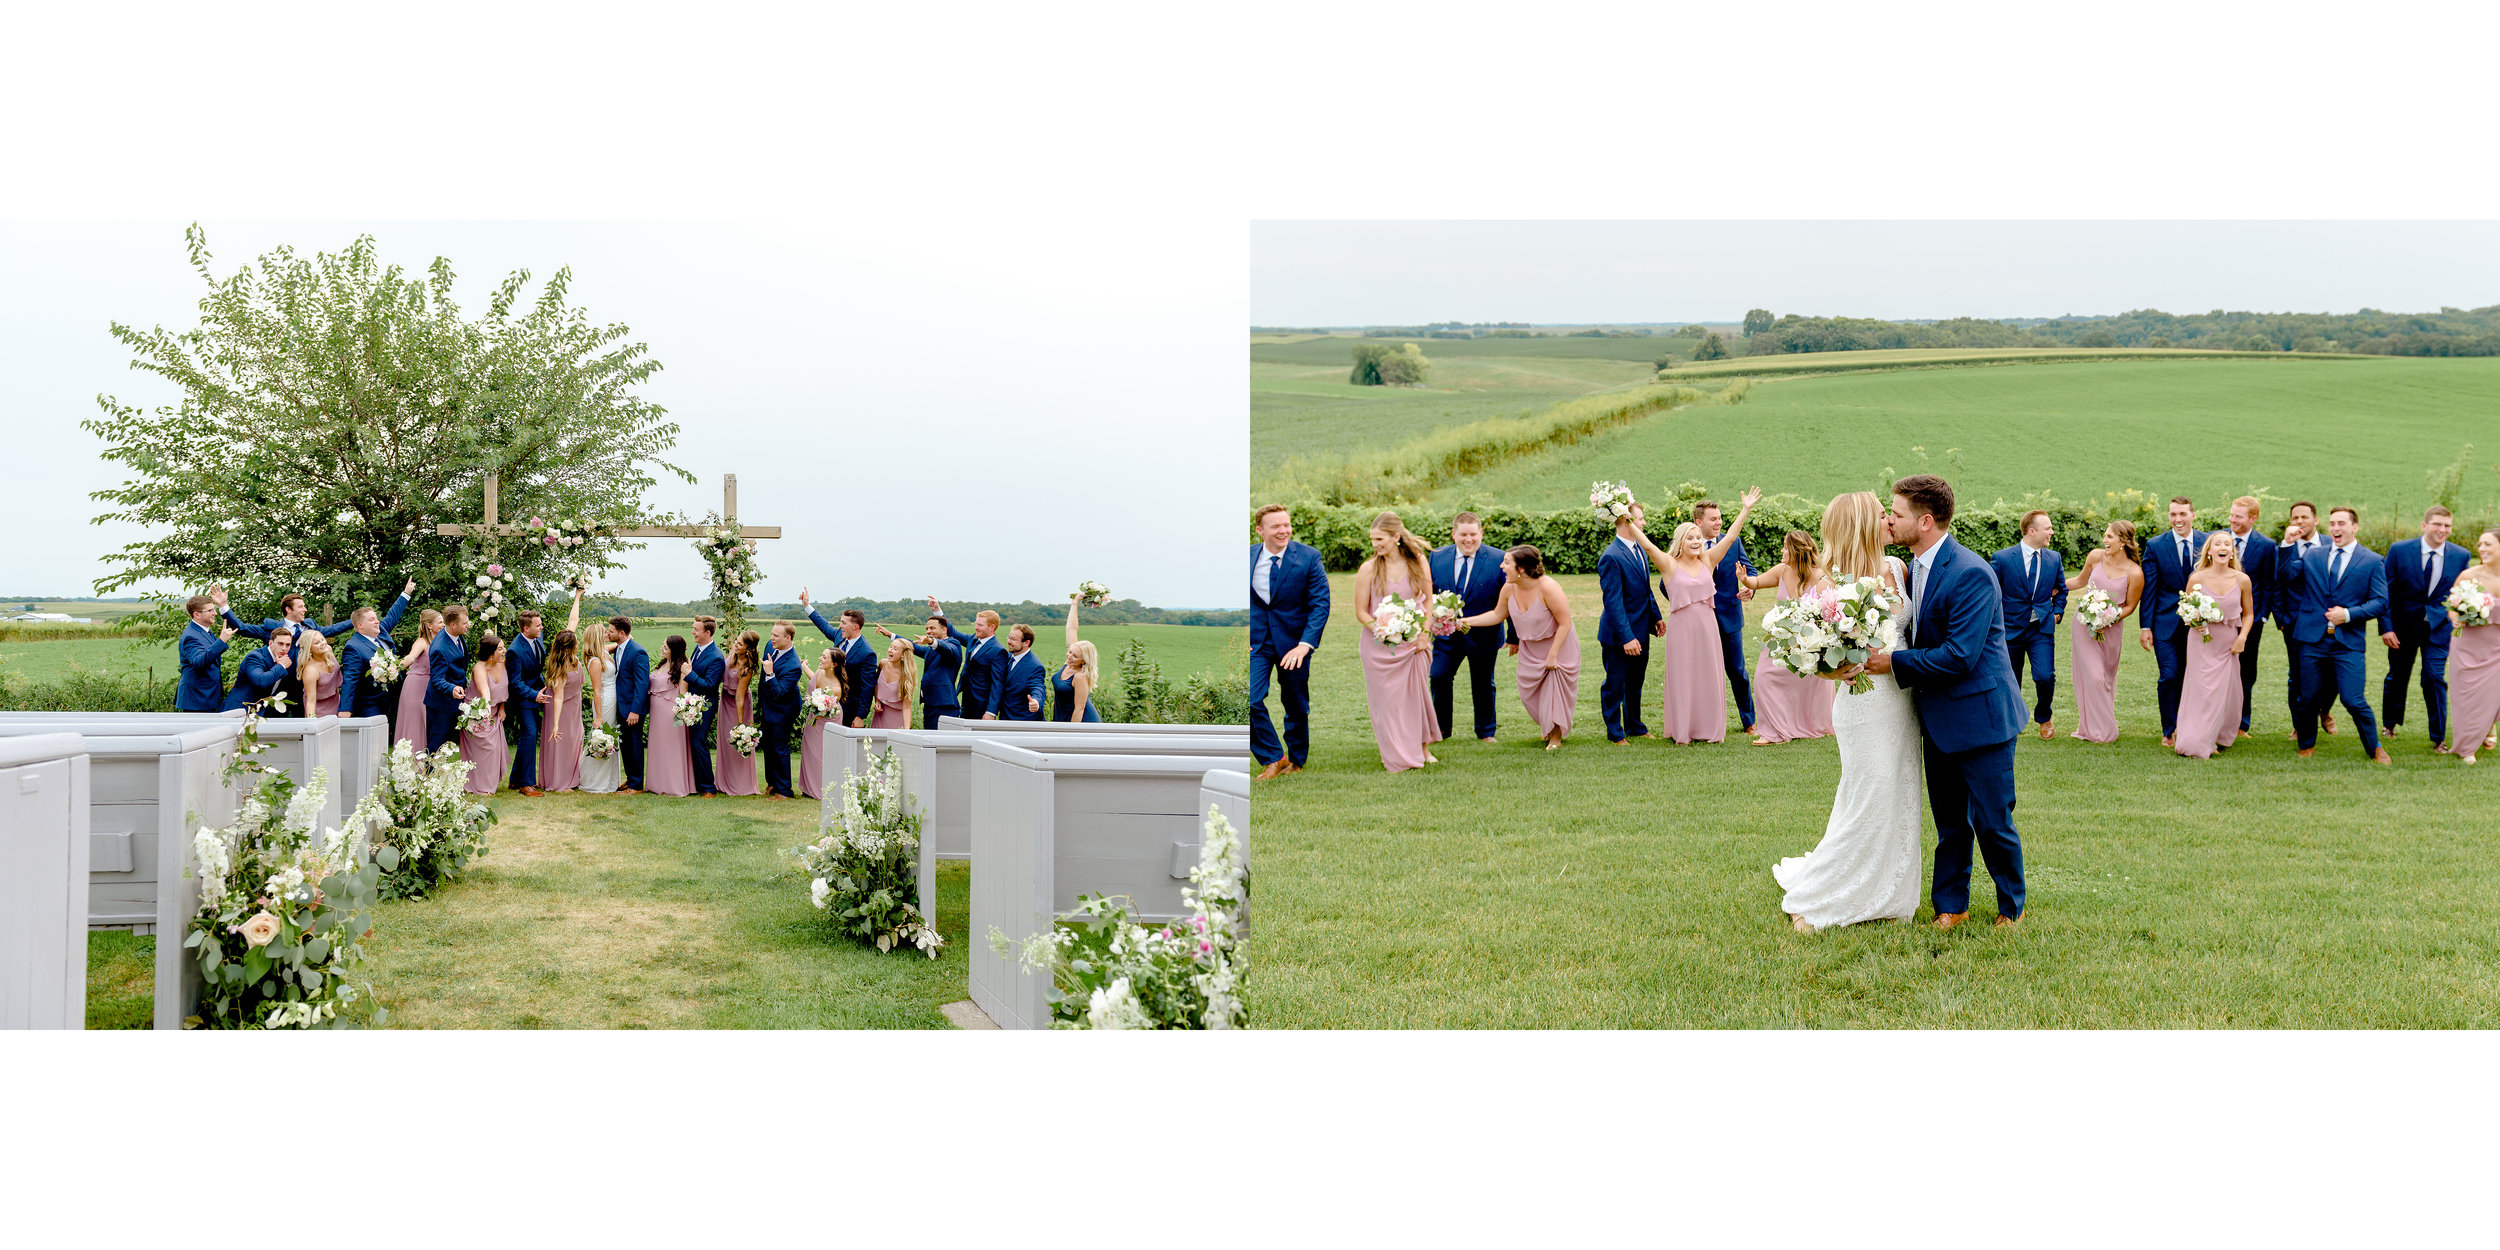 Ashley + Justin - Wedding Album_13.jpg